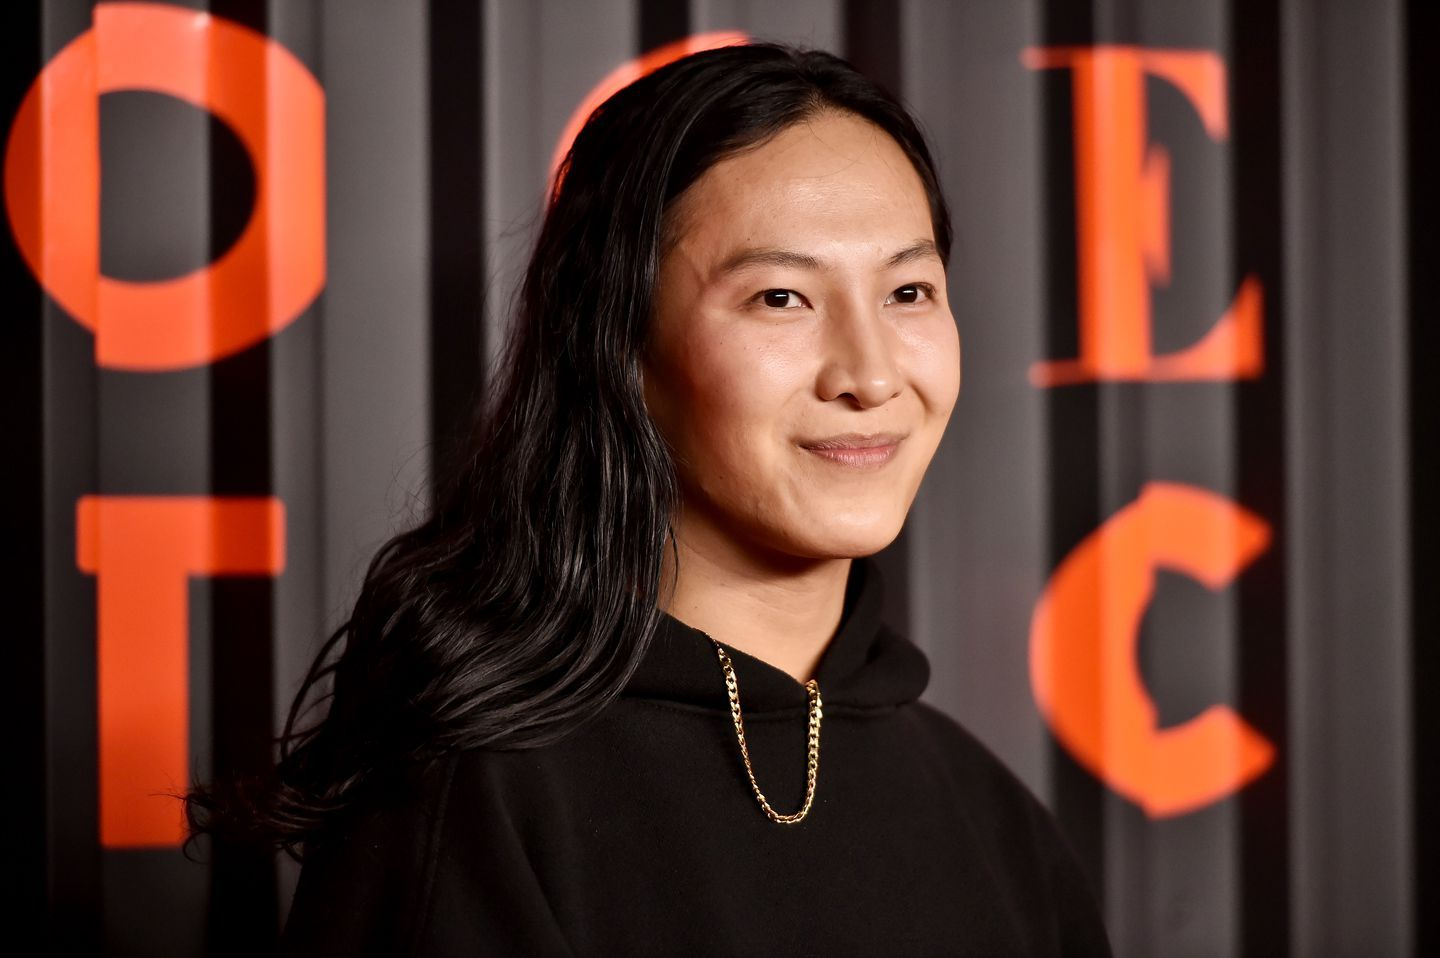 11 jóvenes acusan a Alexander Wang de abuso sexual